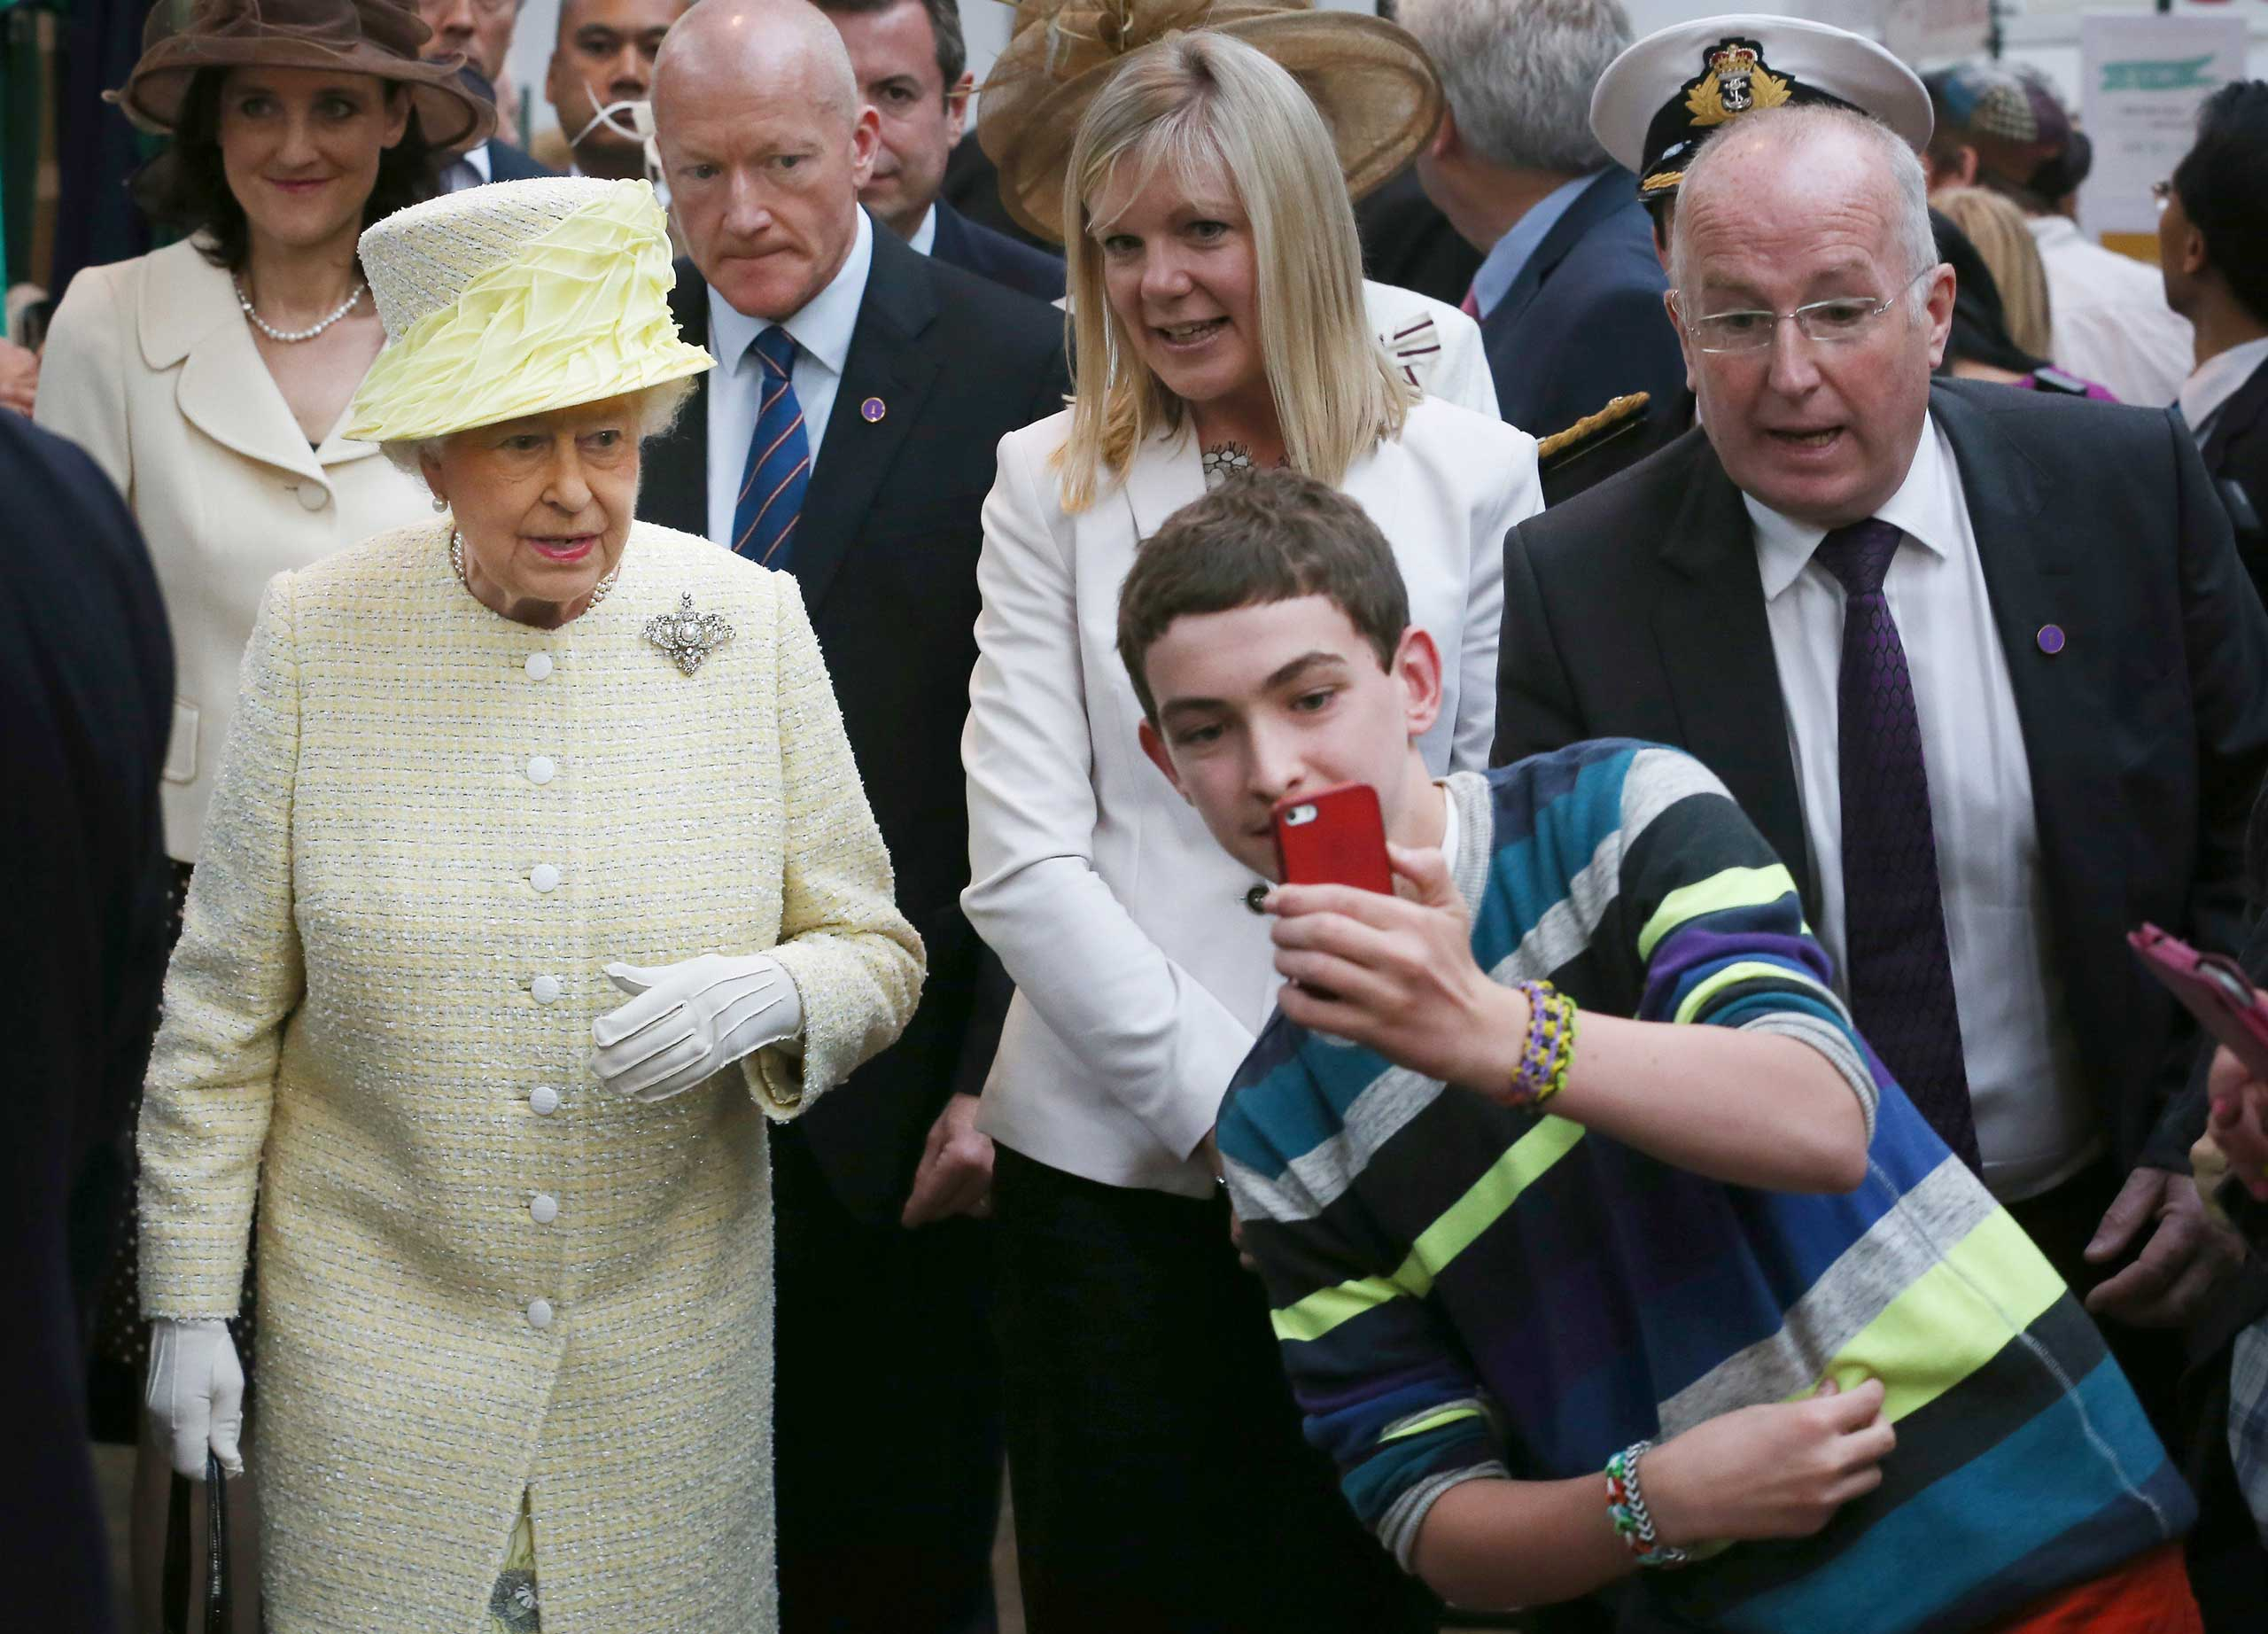 A local youth takes a selfie in front of Queen Elizabeth II during her visit to St George's indoor market in Belfast, Northern Ireland, June 24, 2014.